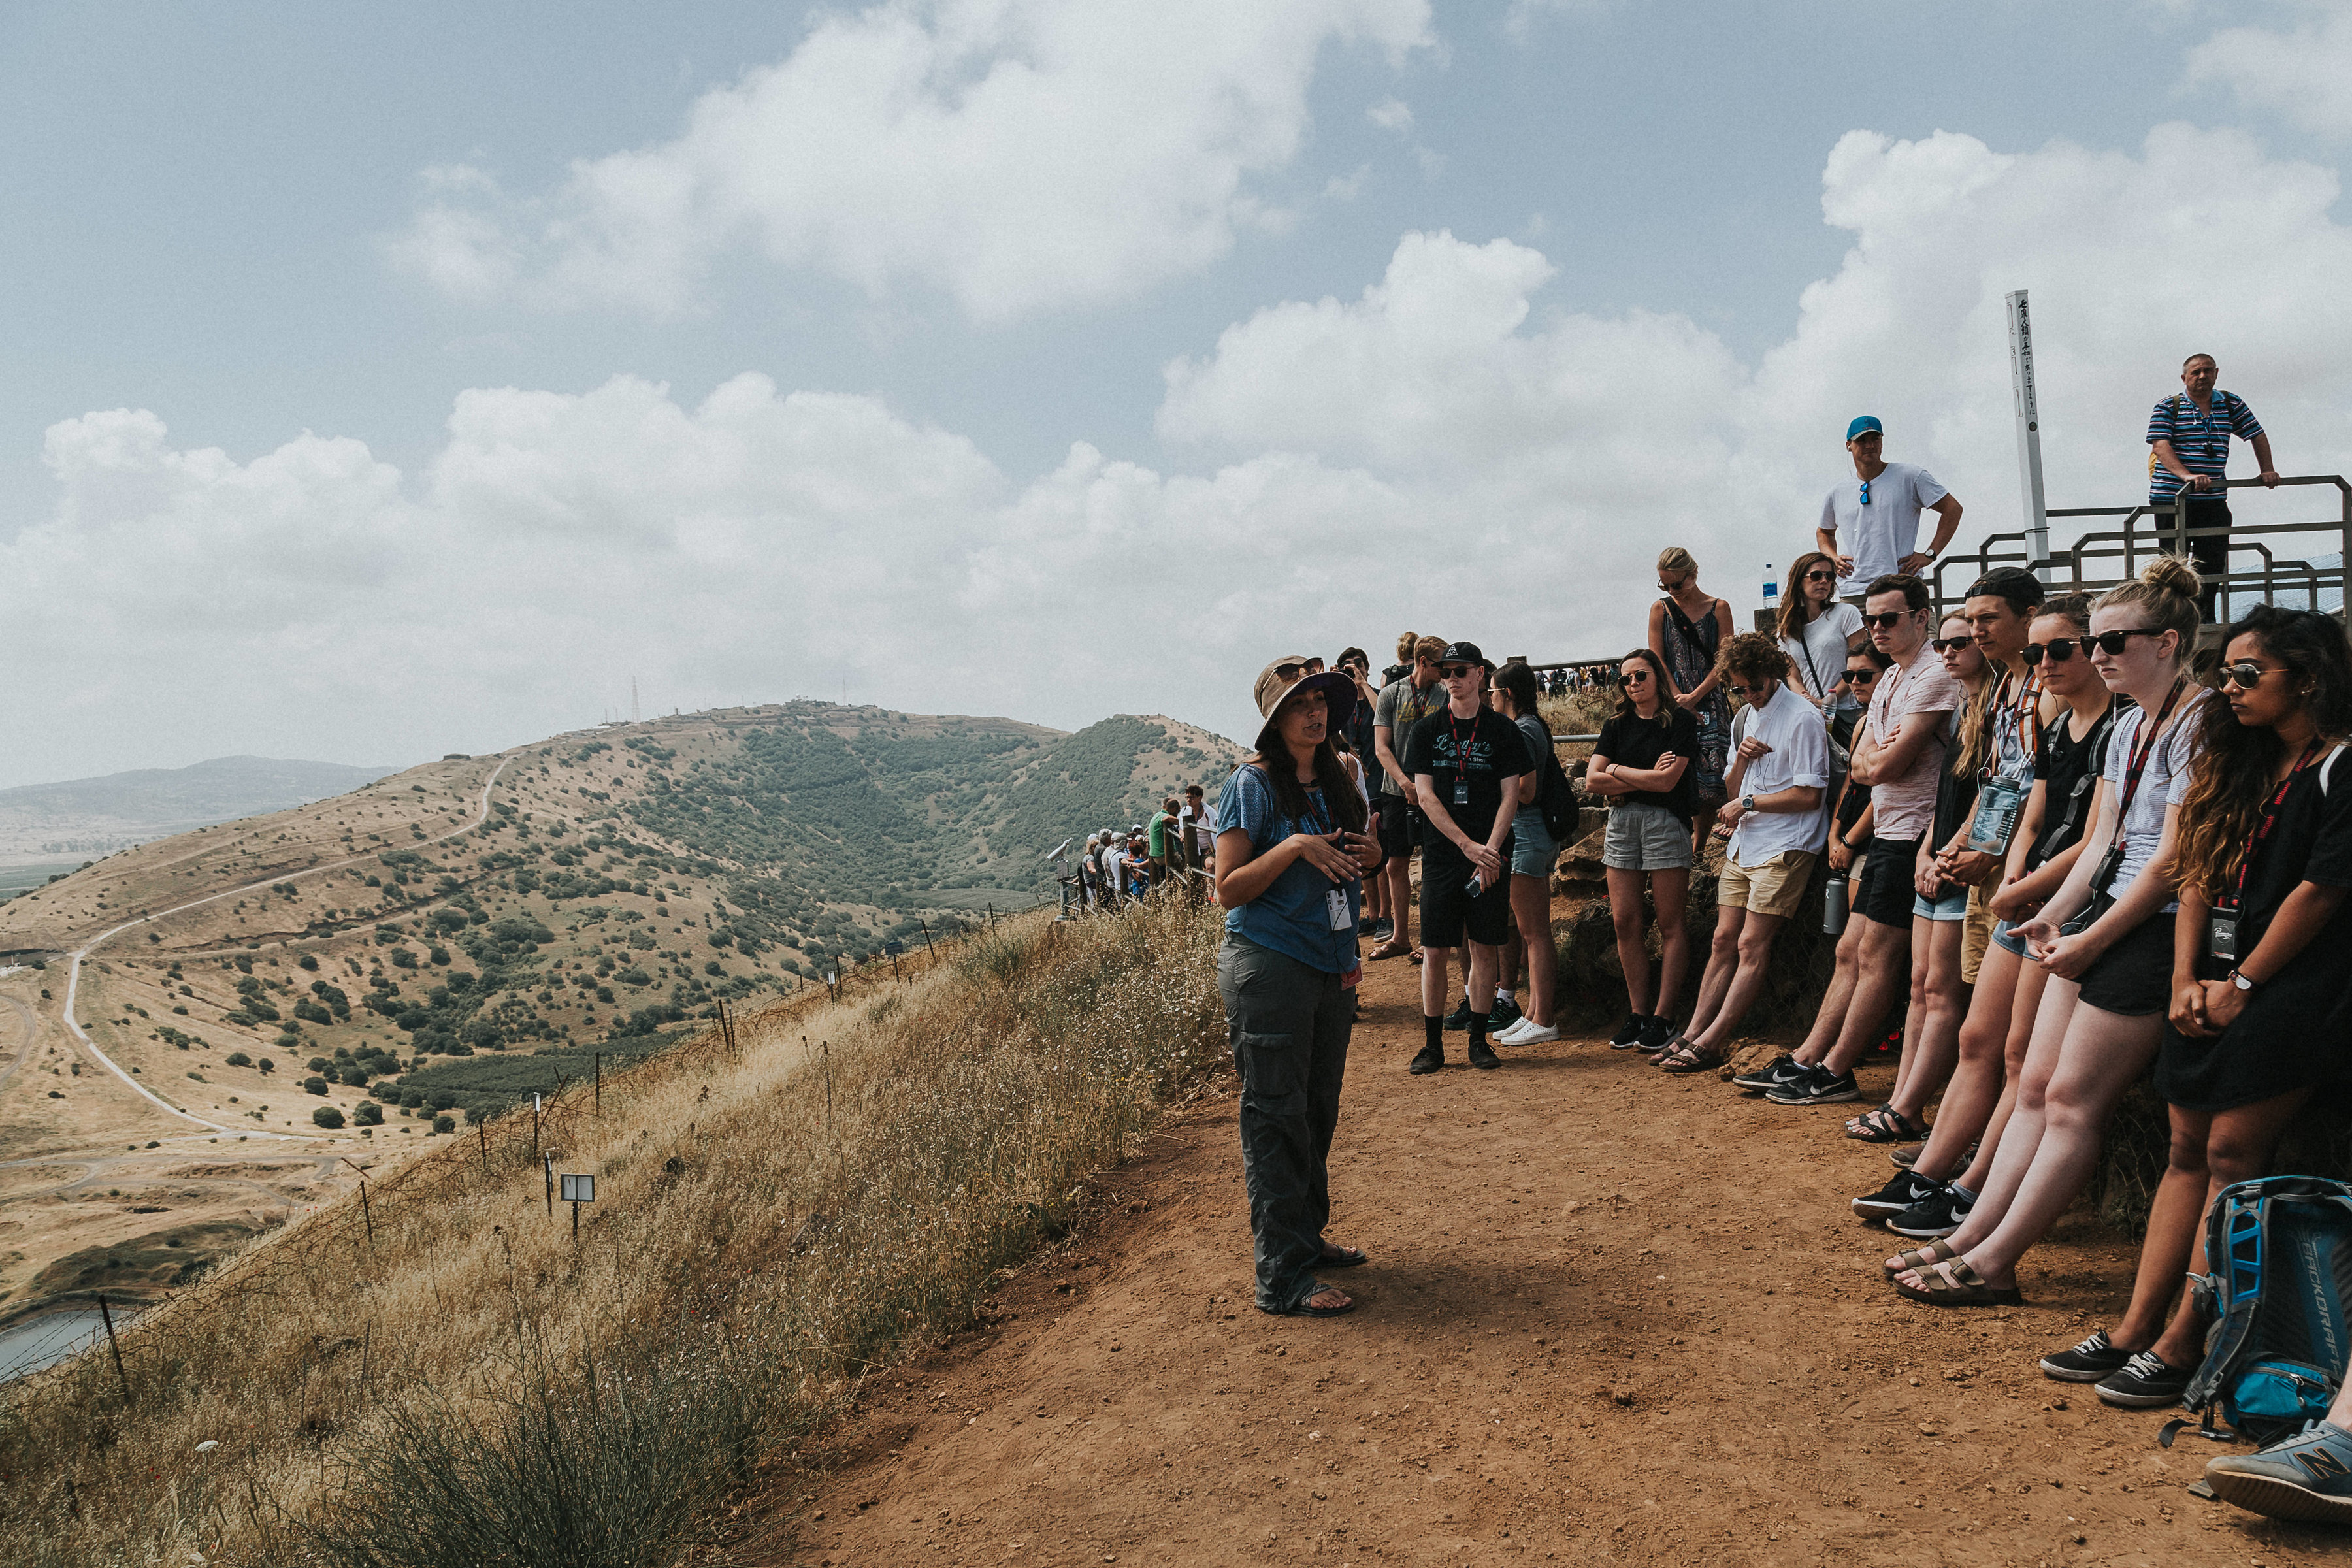 Looking out over the border of Syria and Israel, trying to understand the complexities of such borders, both here and along other points in Israel.